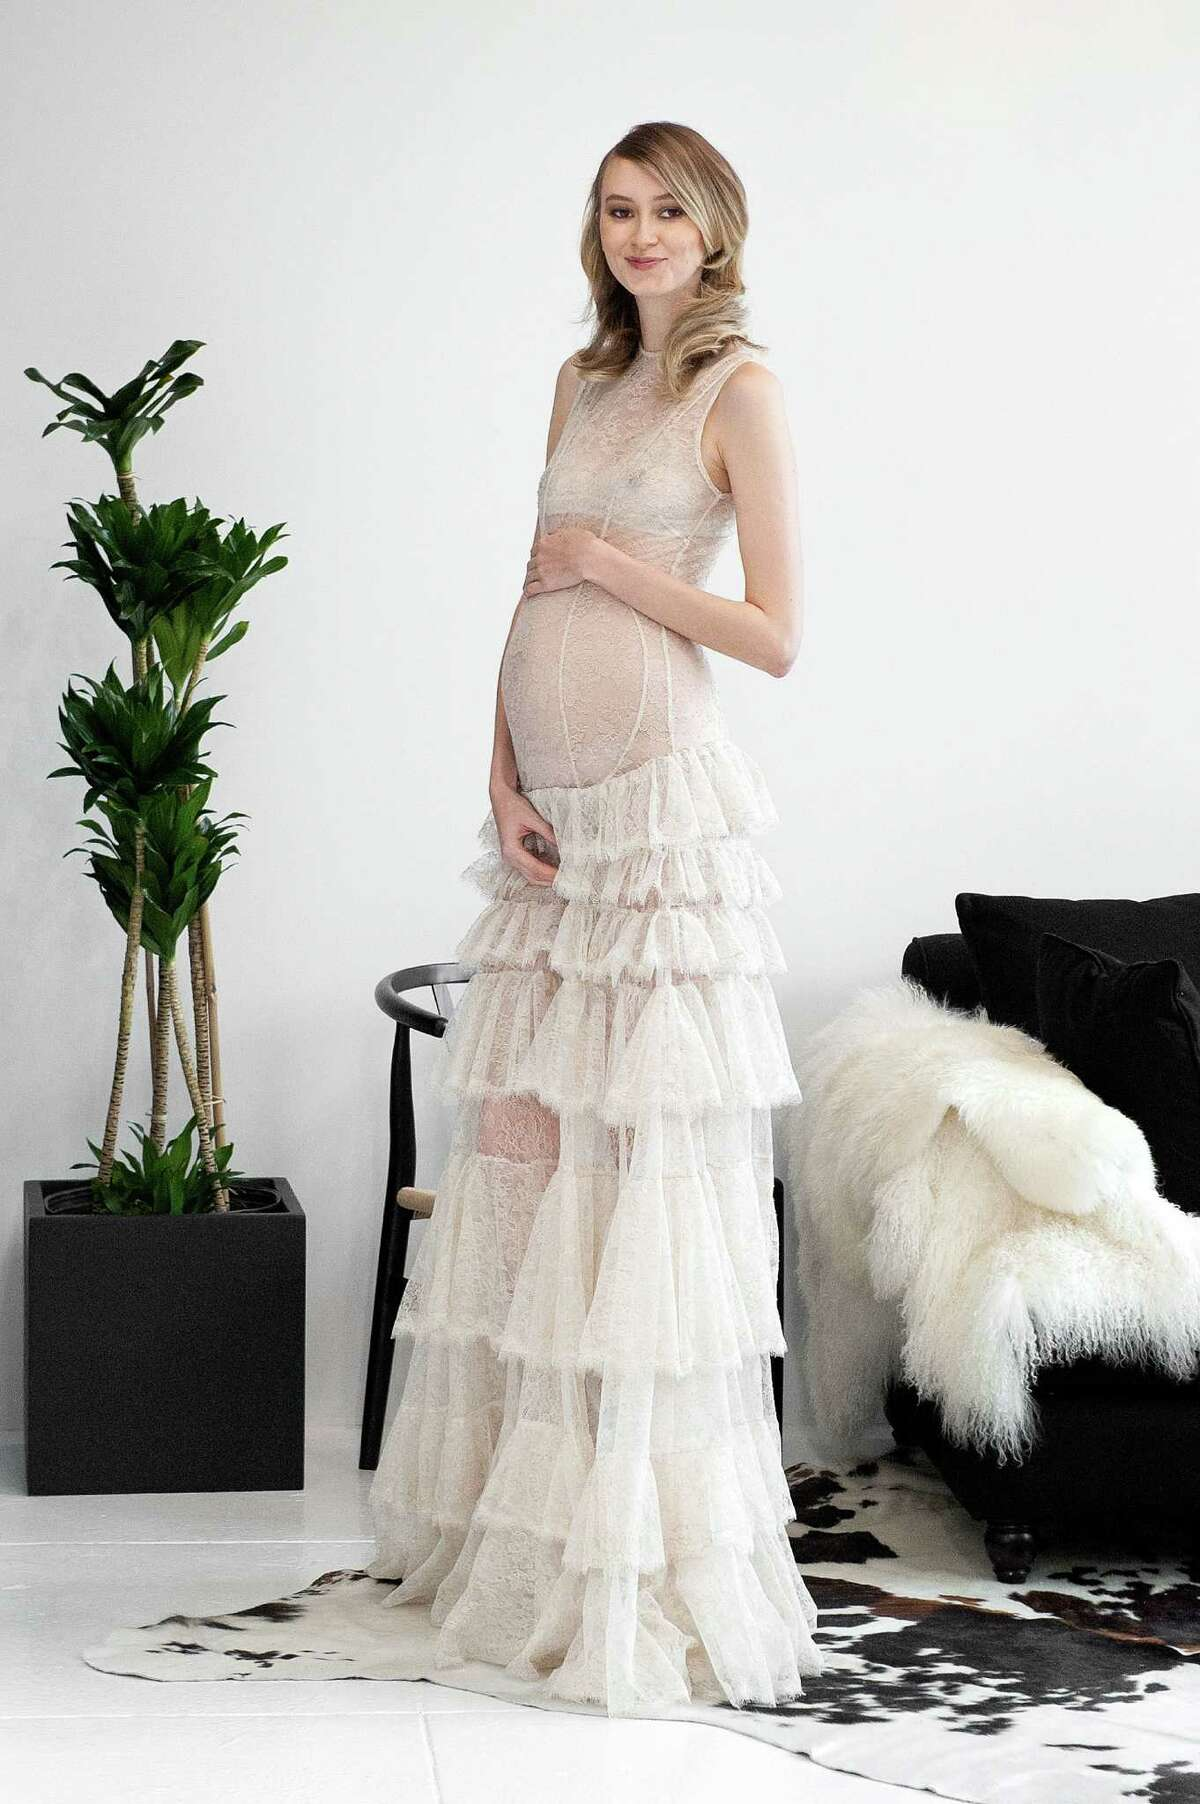 Show off that adorable pregnancy bump - and everything else - in this gown.